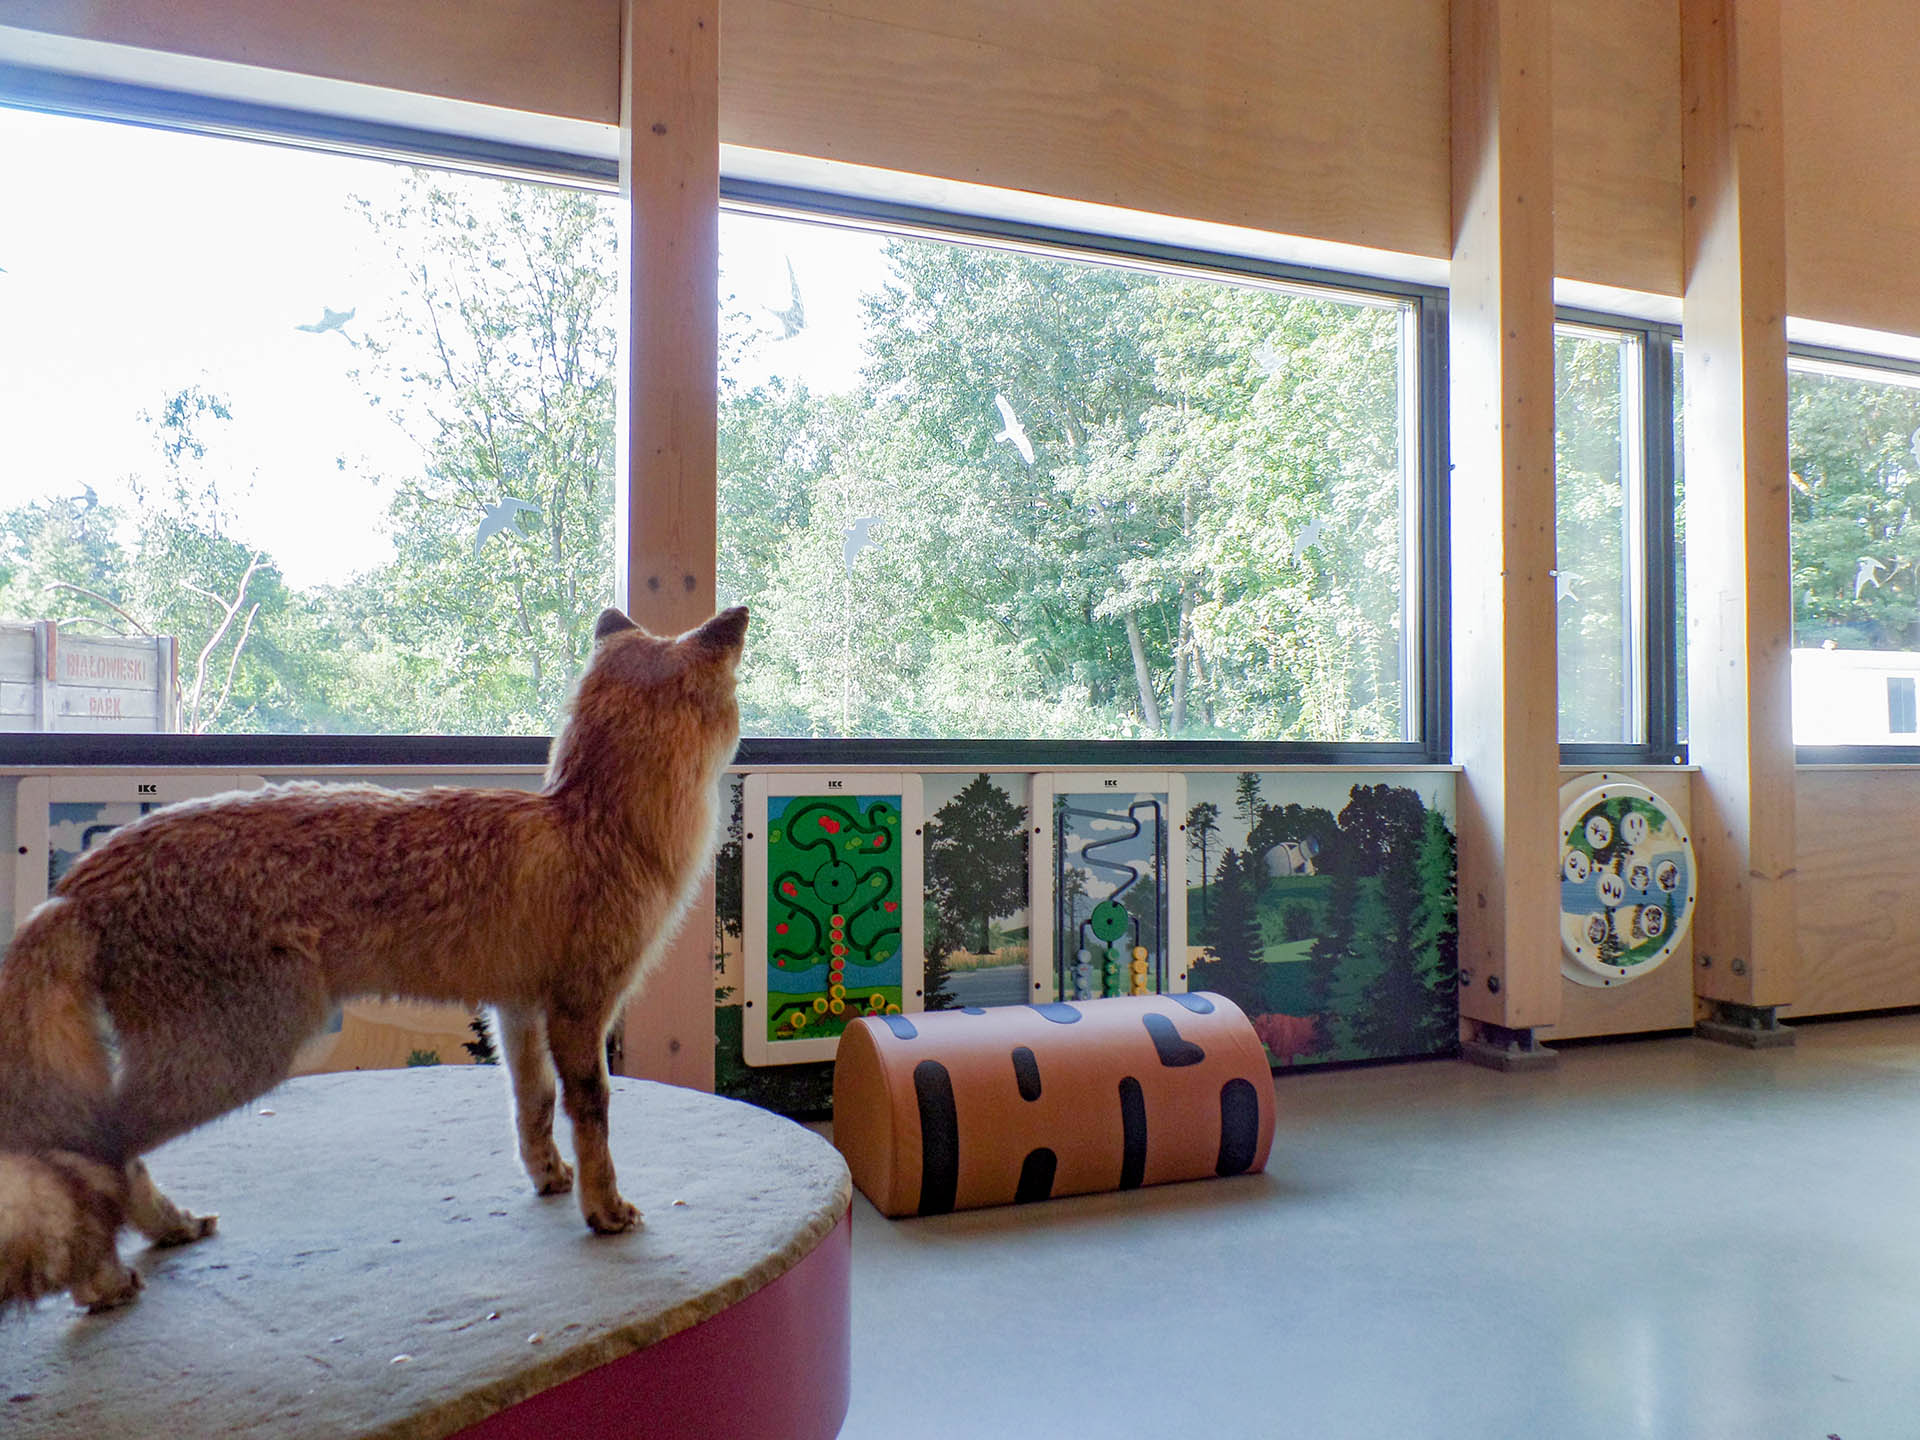 This picture shows a play corner in a visitors information centre of a Dutch national park